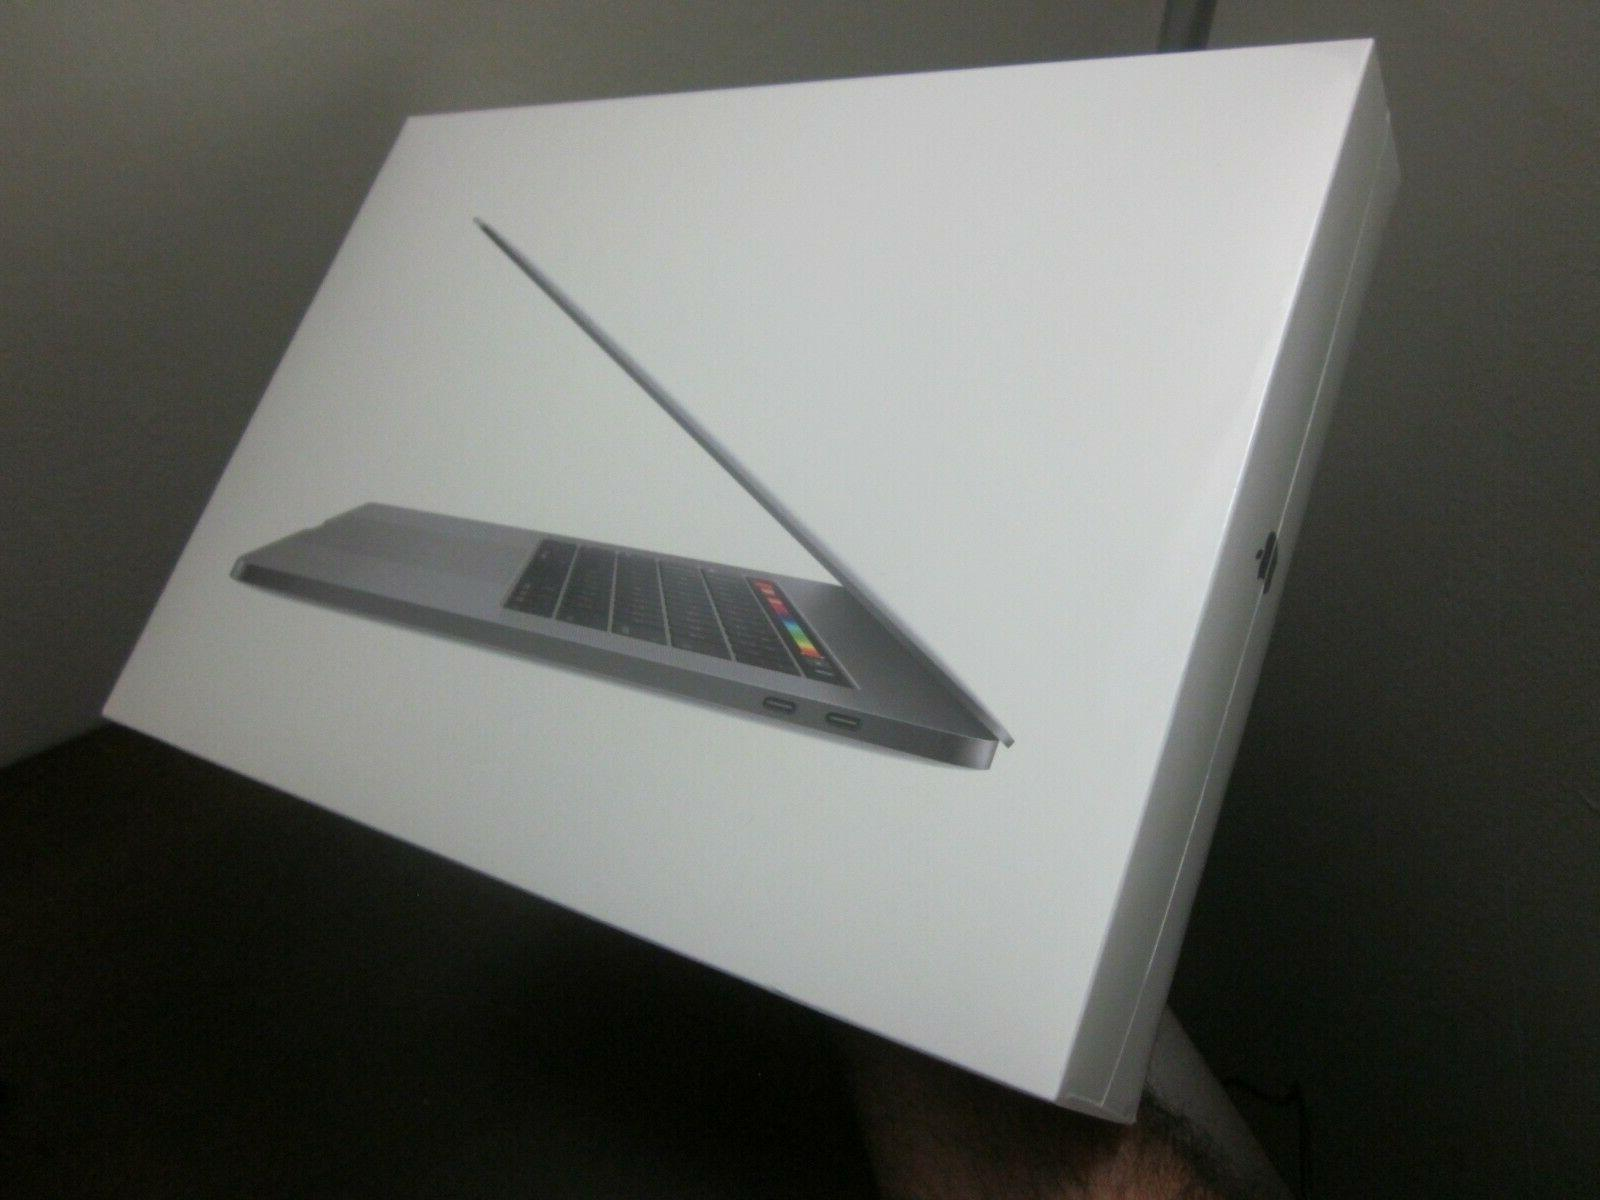 macbook pro 15 4 256gb ssd i7